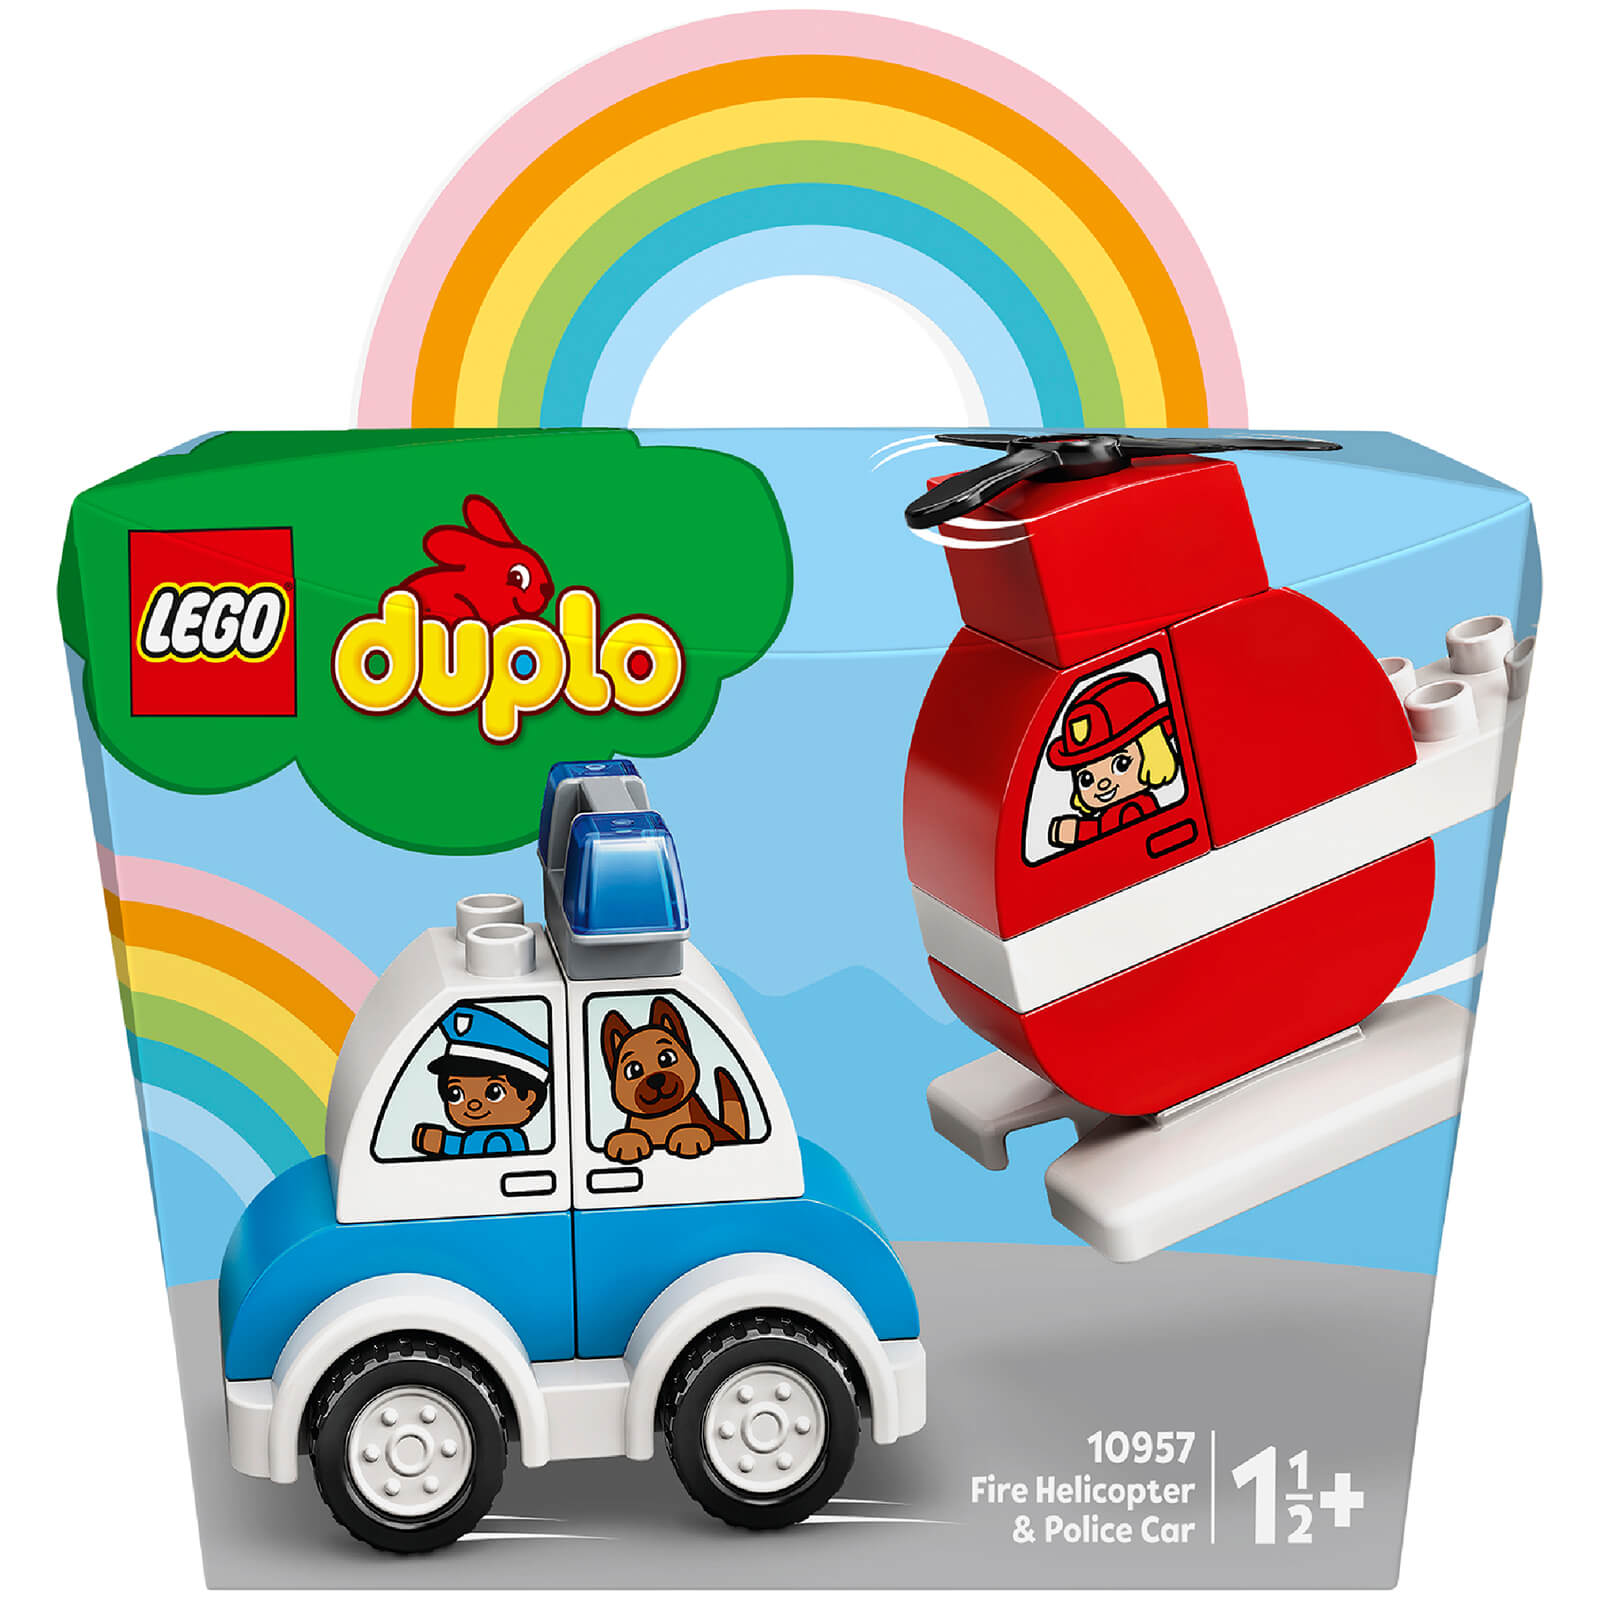 Image of LEGO Duplo Fire Helicopter & Police Car Playset - 10957